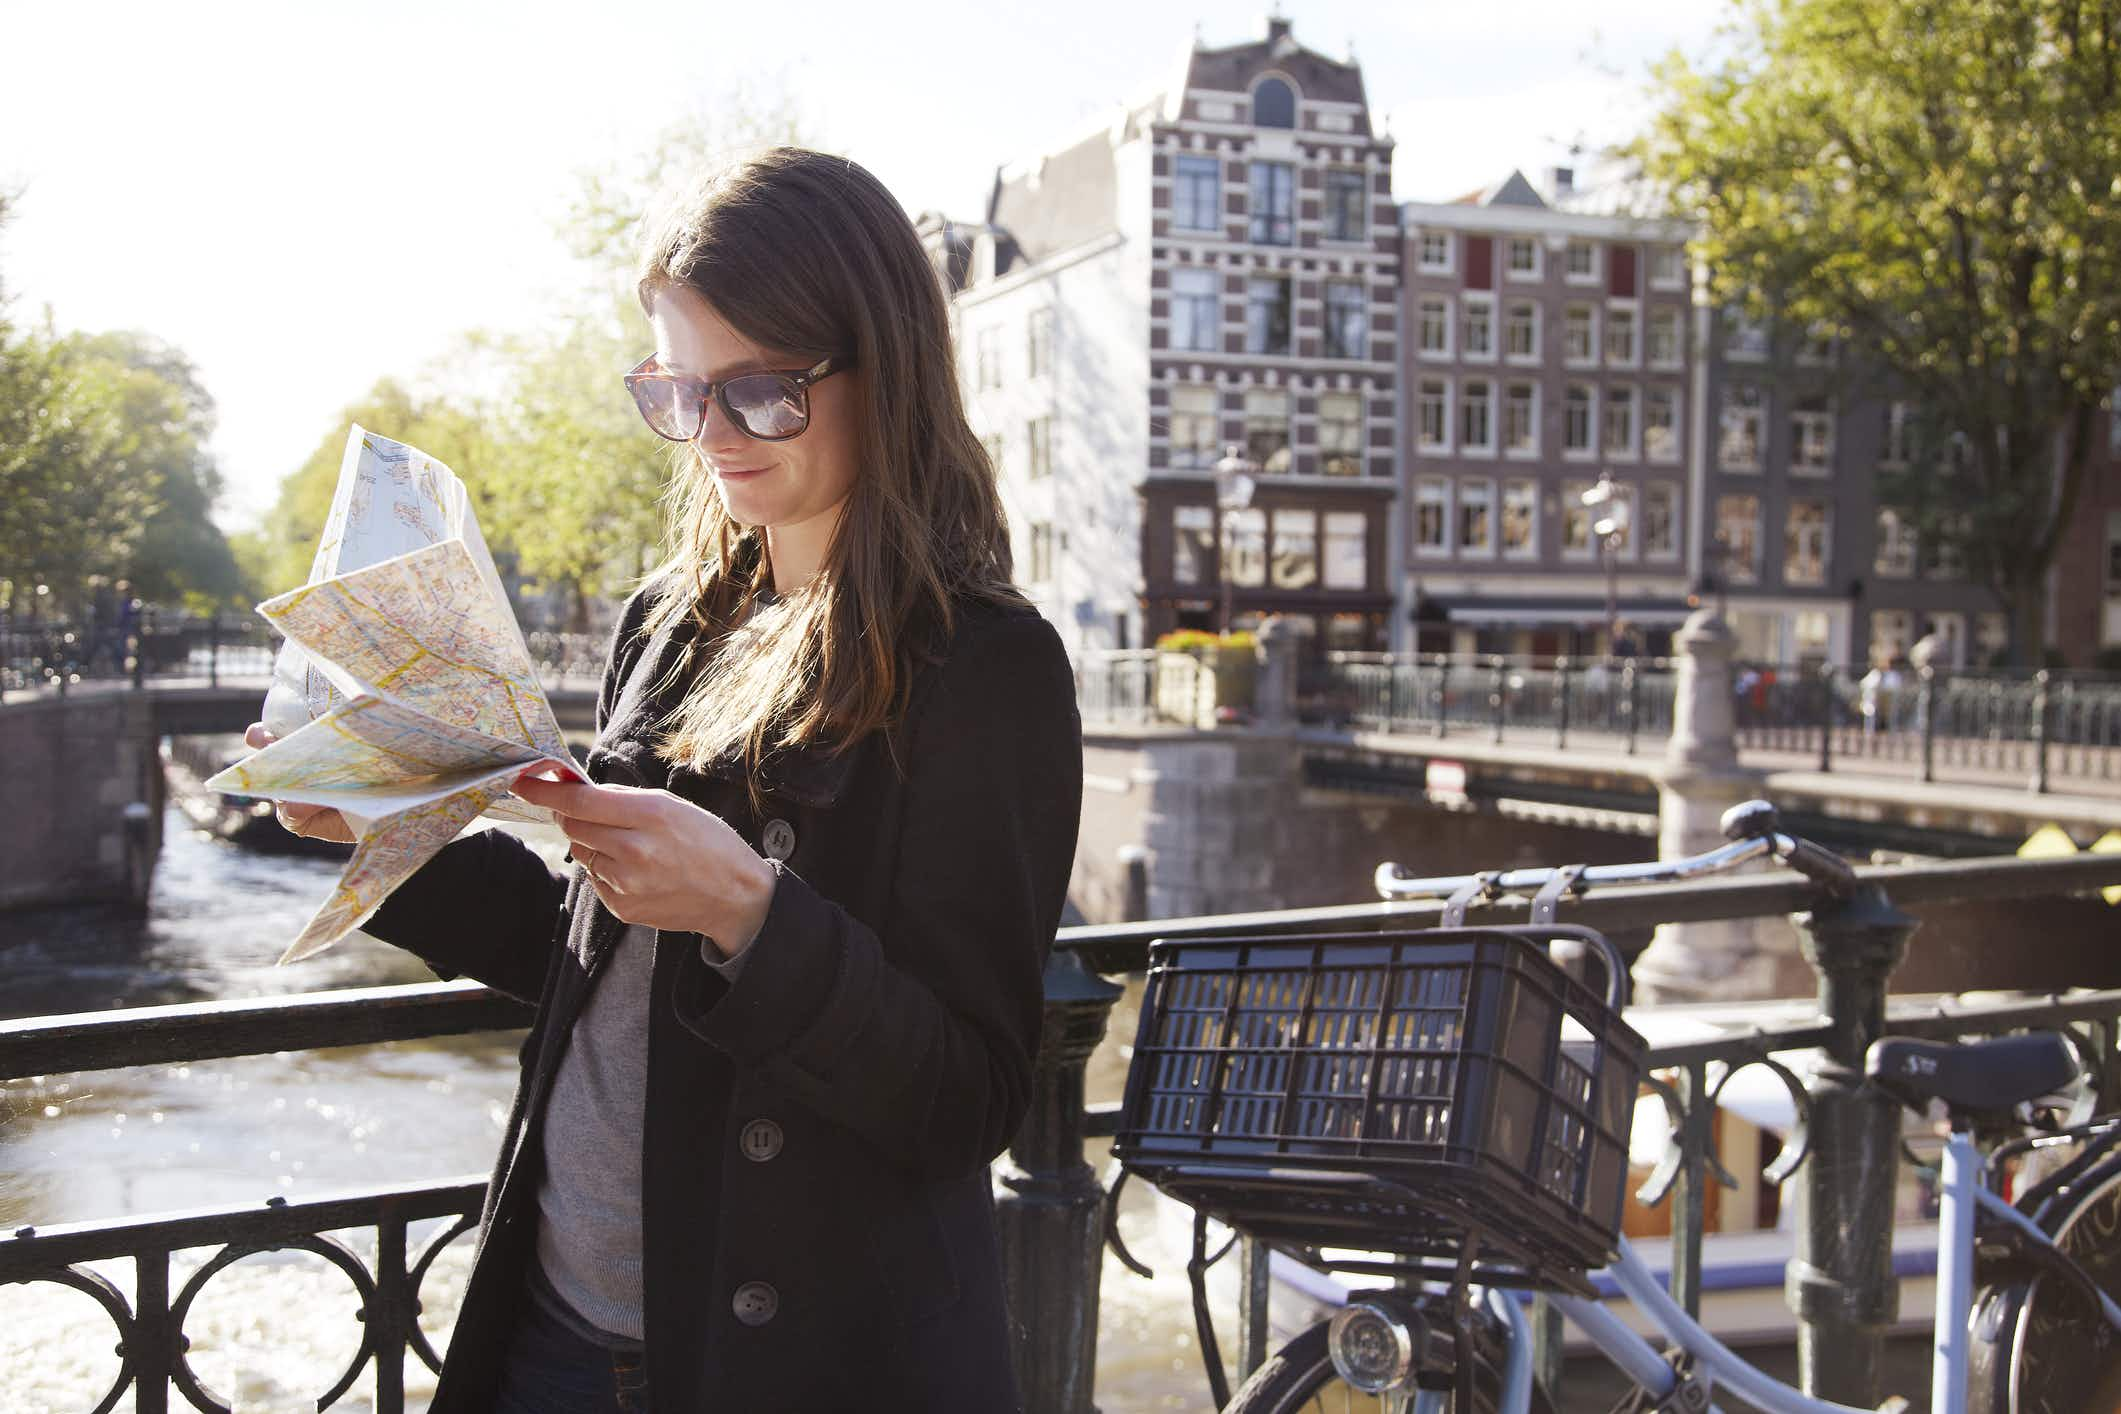 KLM's new luggage tag will also guide you around Amsterdam